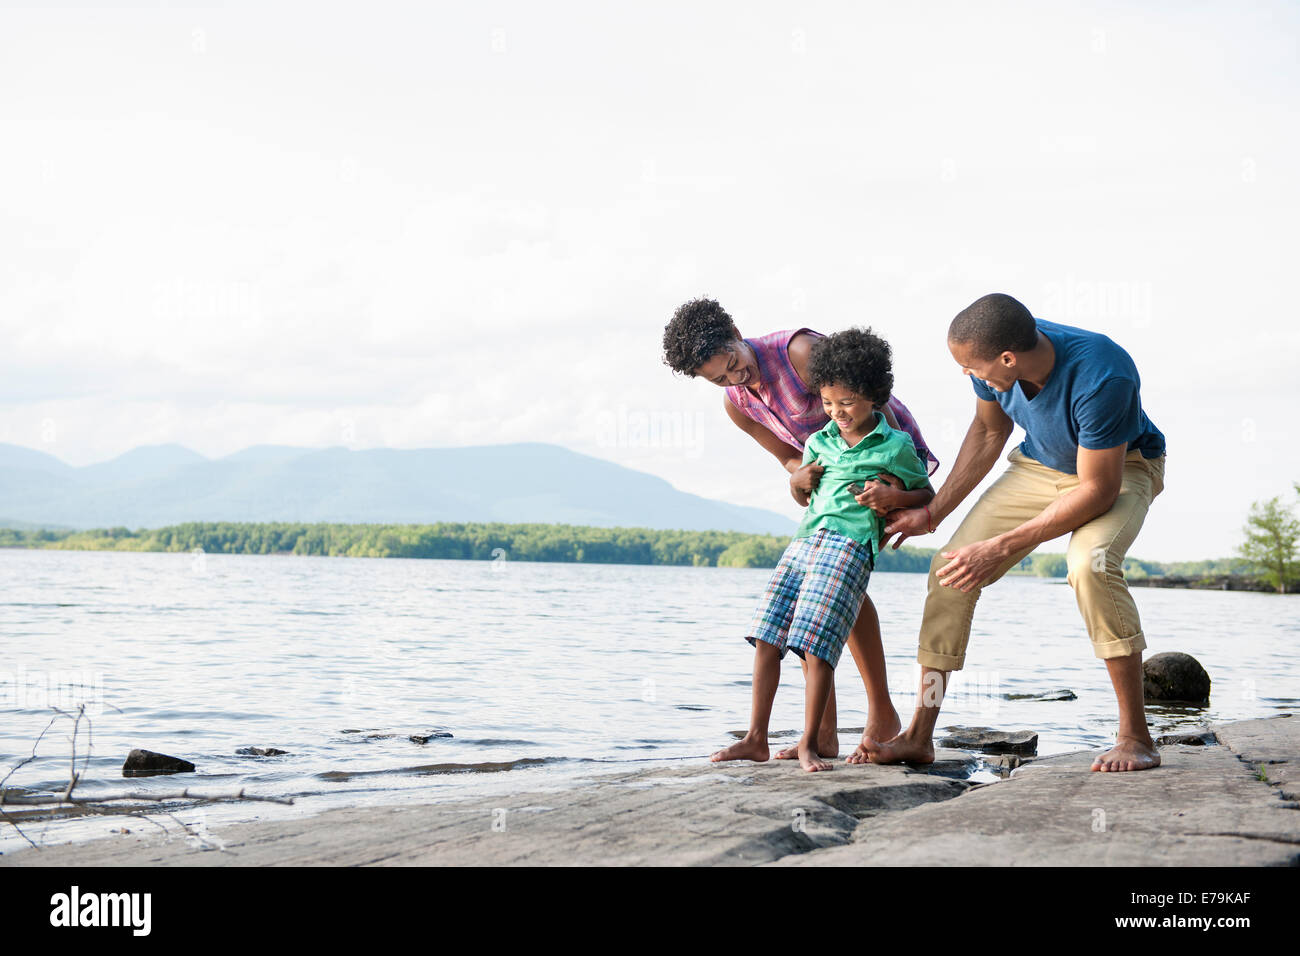 A family, mother, father and son playing on the shores of a lake. Stock Foto